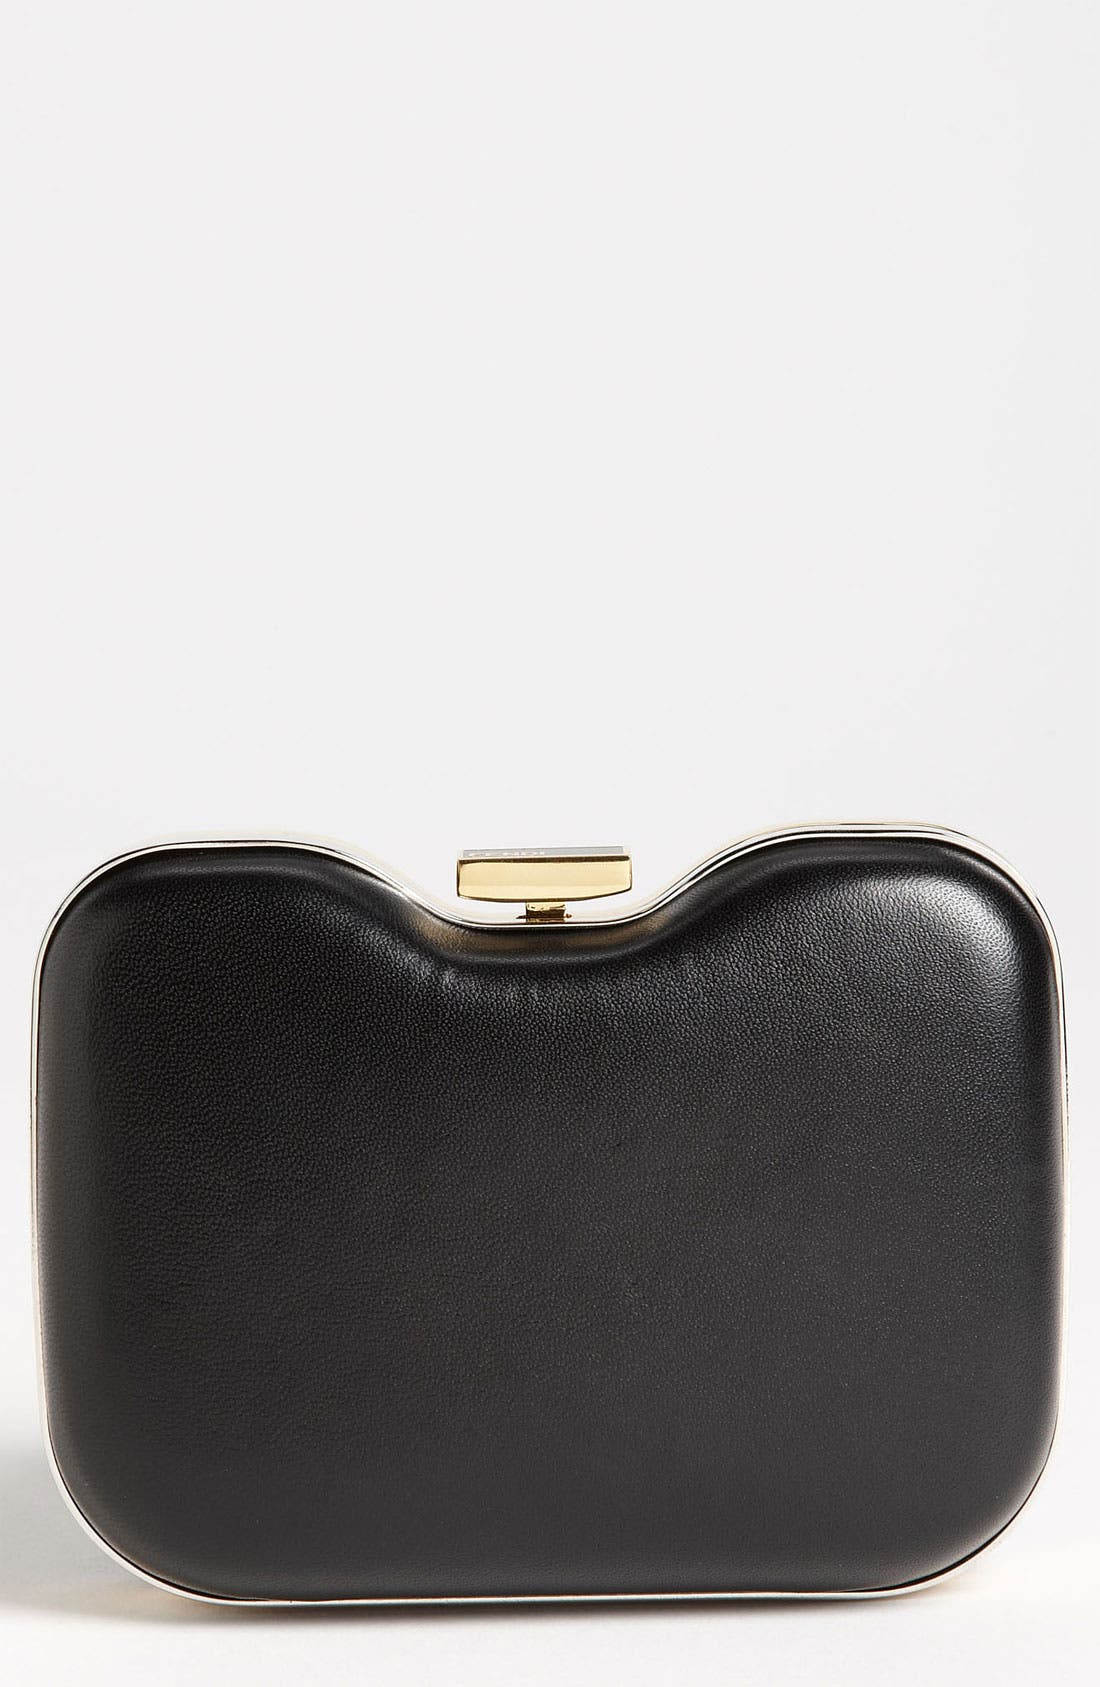 Main Image - Fendi 'Giano' Leather Clutch